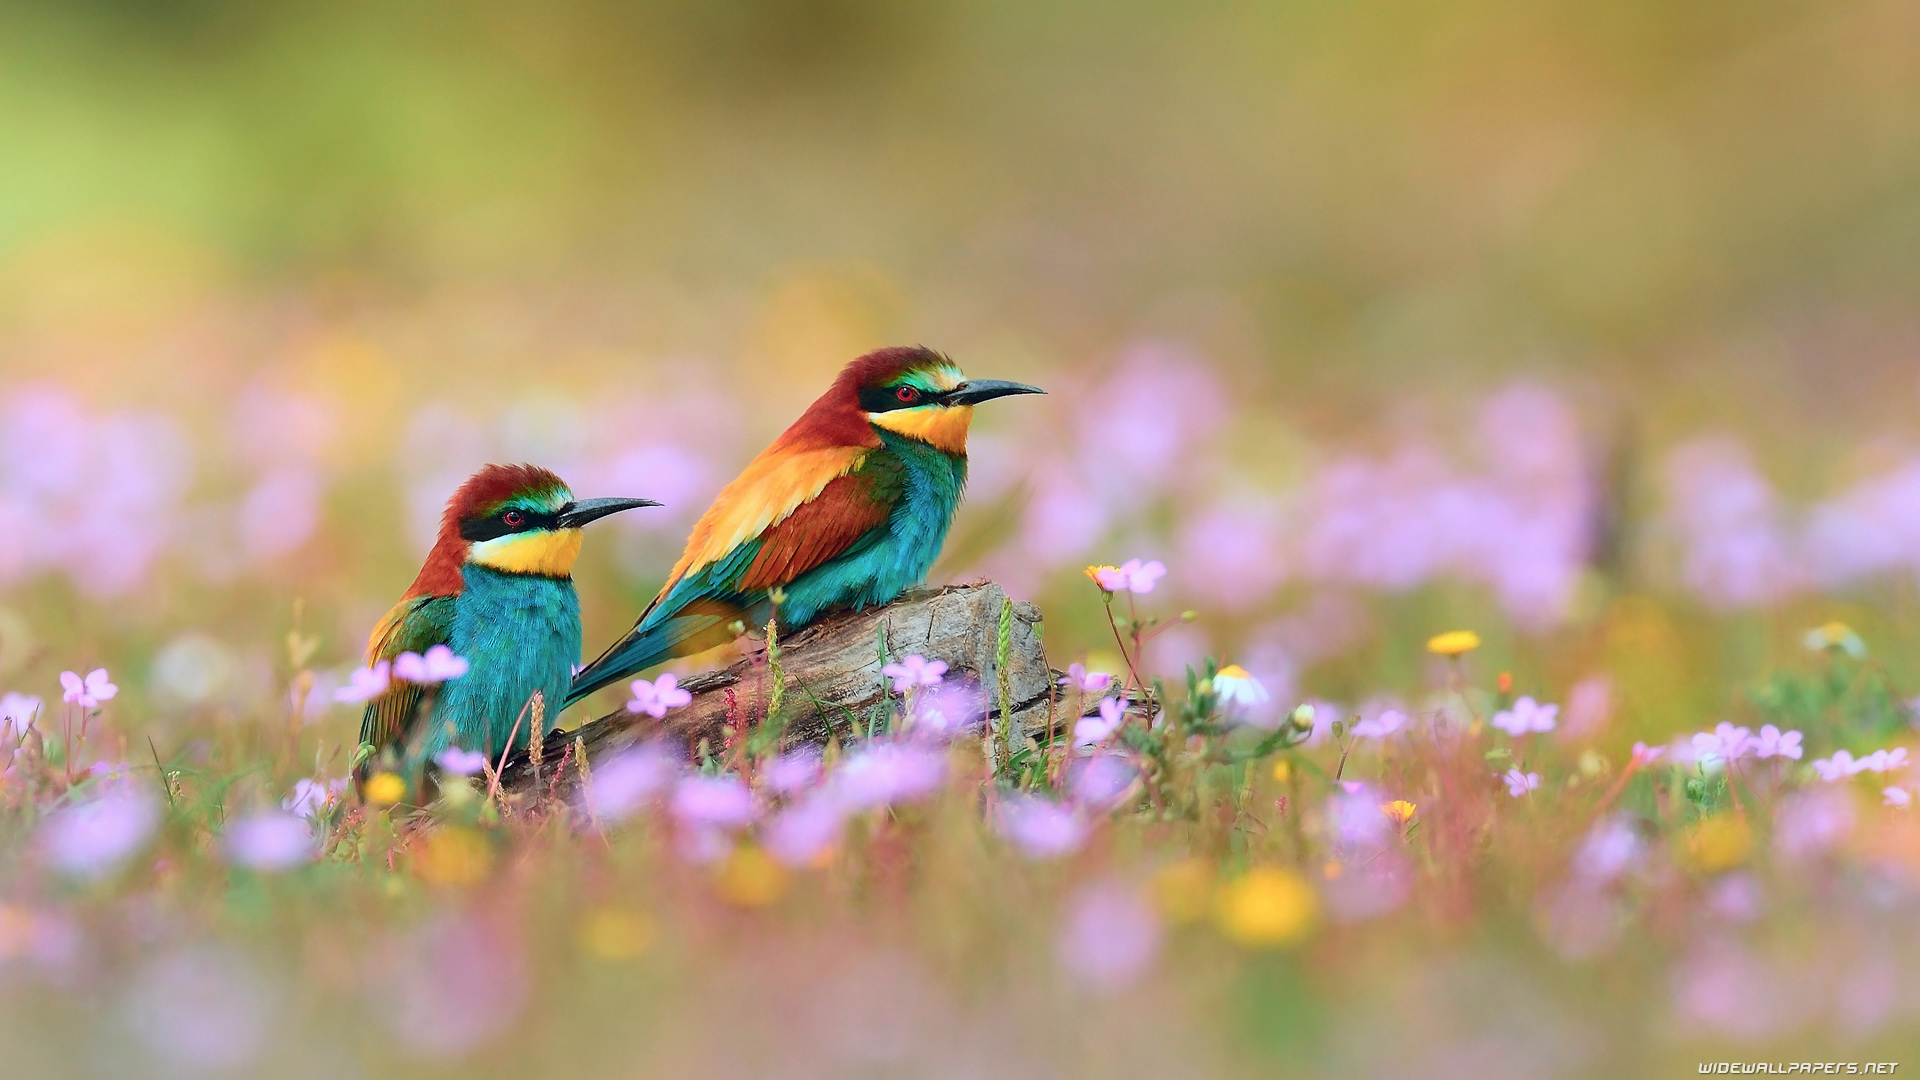 bird-wallpaper-08.jpg ...